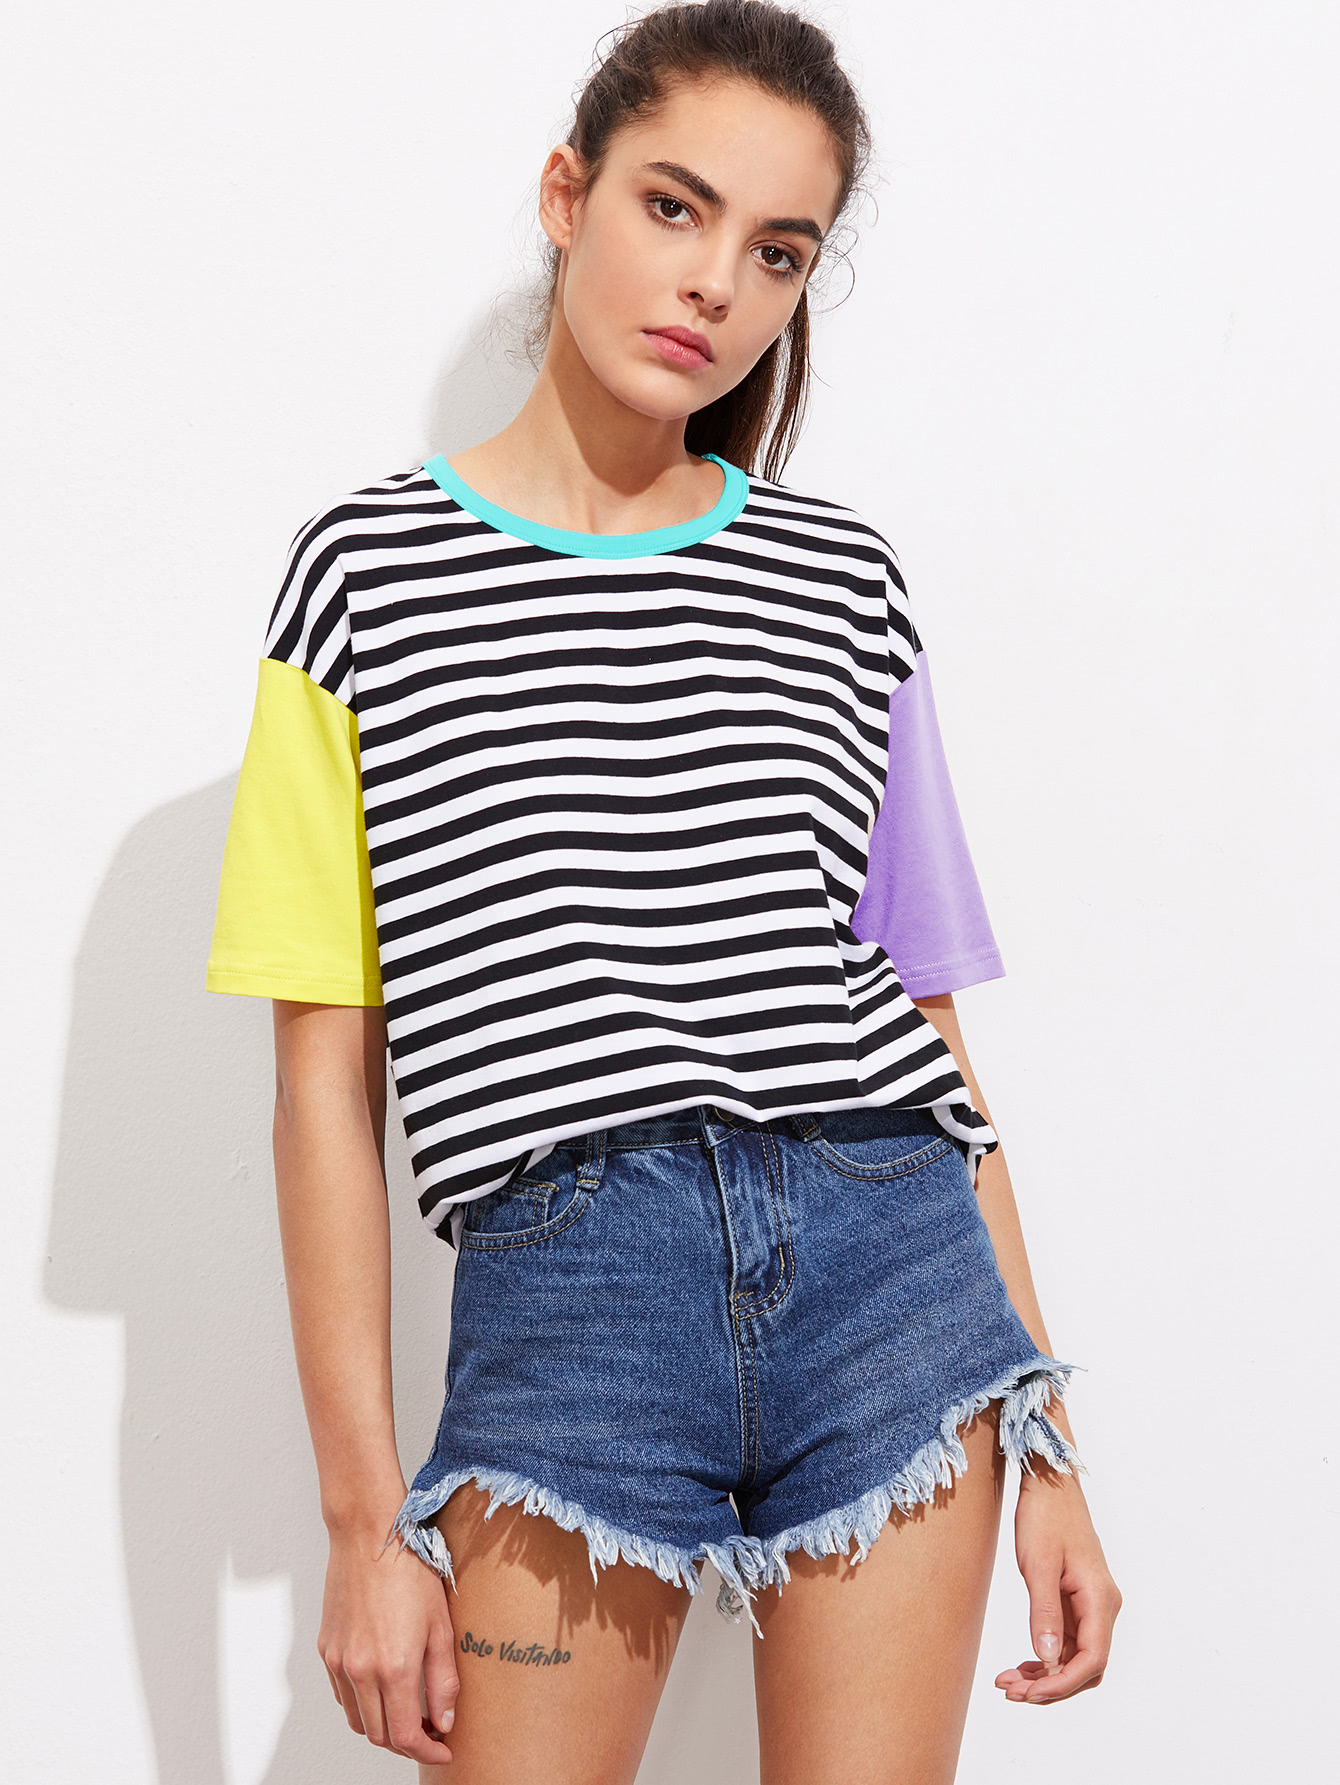 Contrast Neck And Sleeve Striped Tee contrast striped trim camo print tee